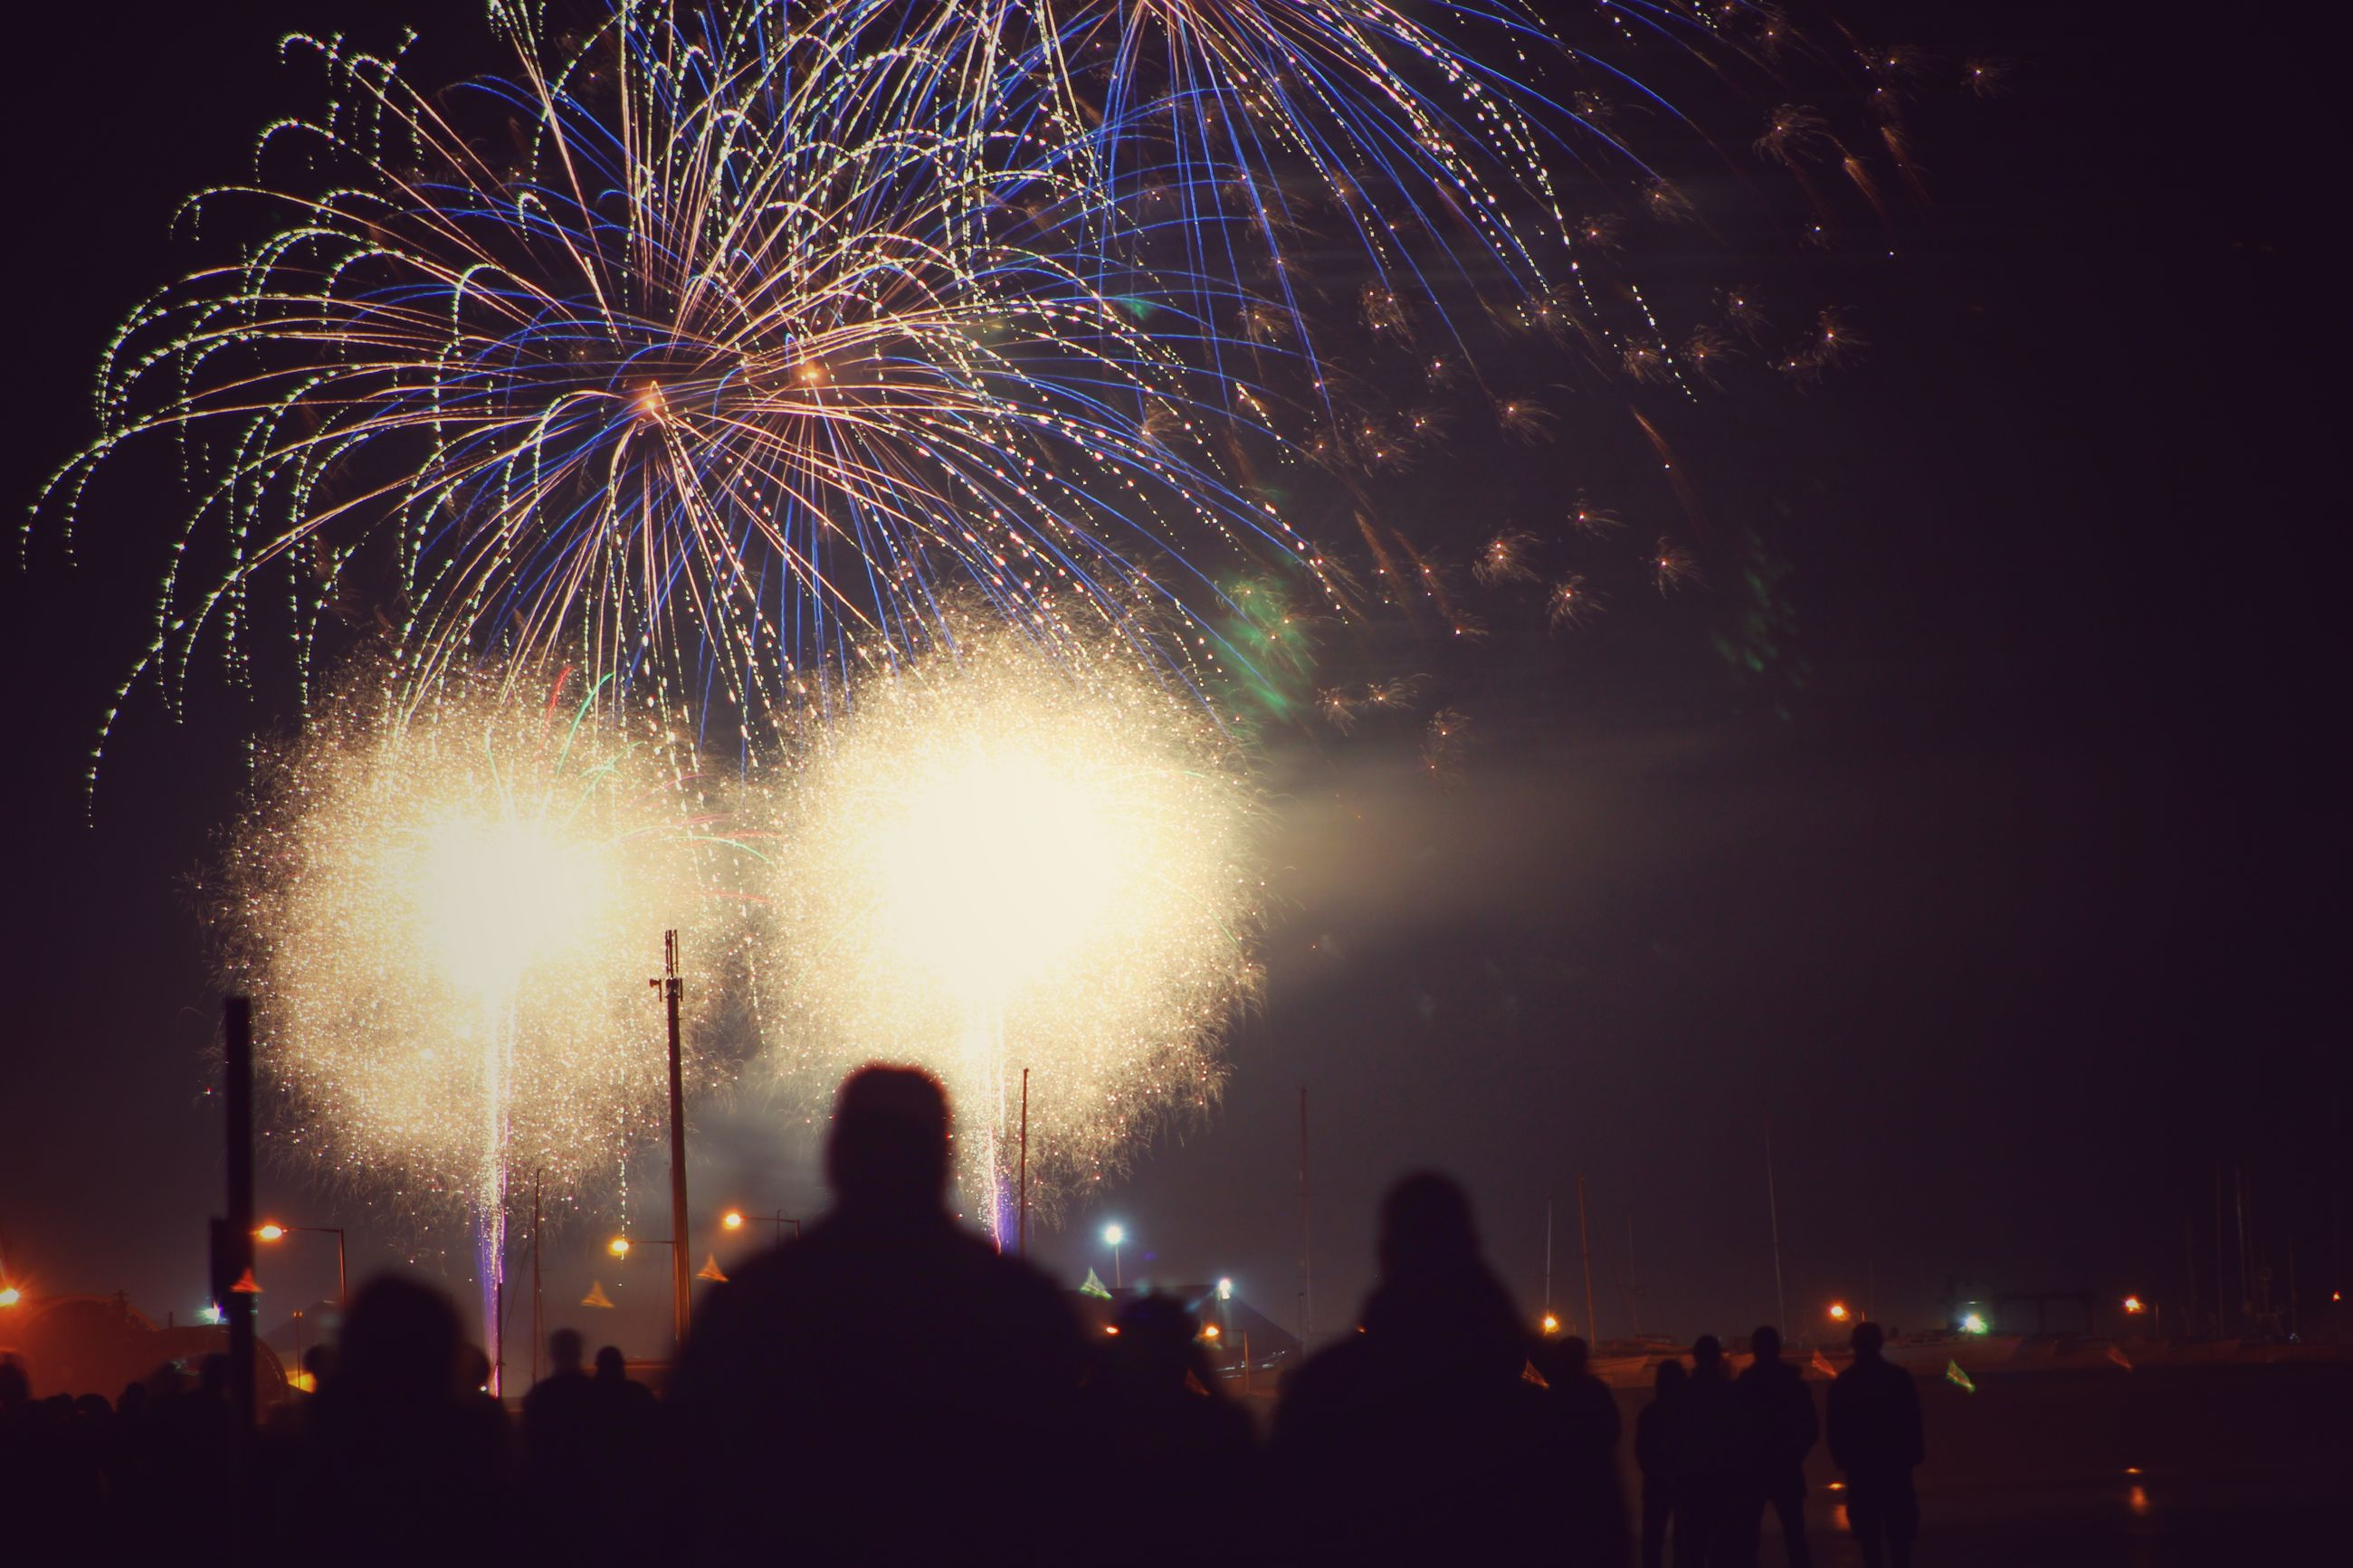 illuminated, night, large group of people, arts culture and entertainment, celebration, event, lifestyles, men, leisure activity, firework display, crowd, person, enjoyment, exploding, firework - man made object, togetherness, sparks, fun, nightlife